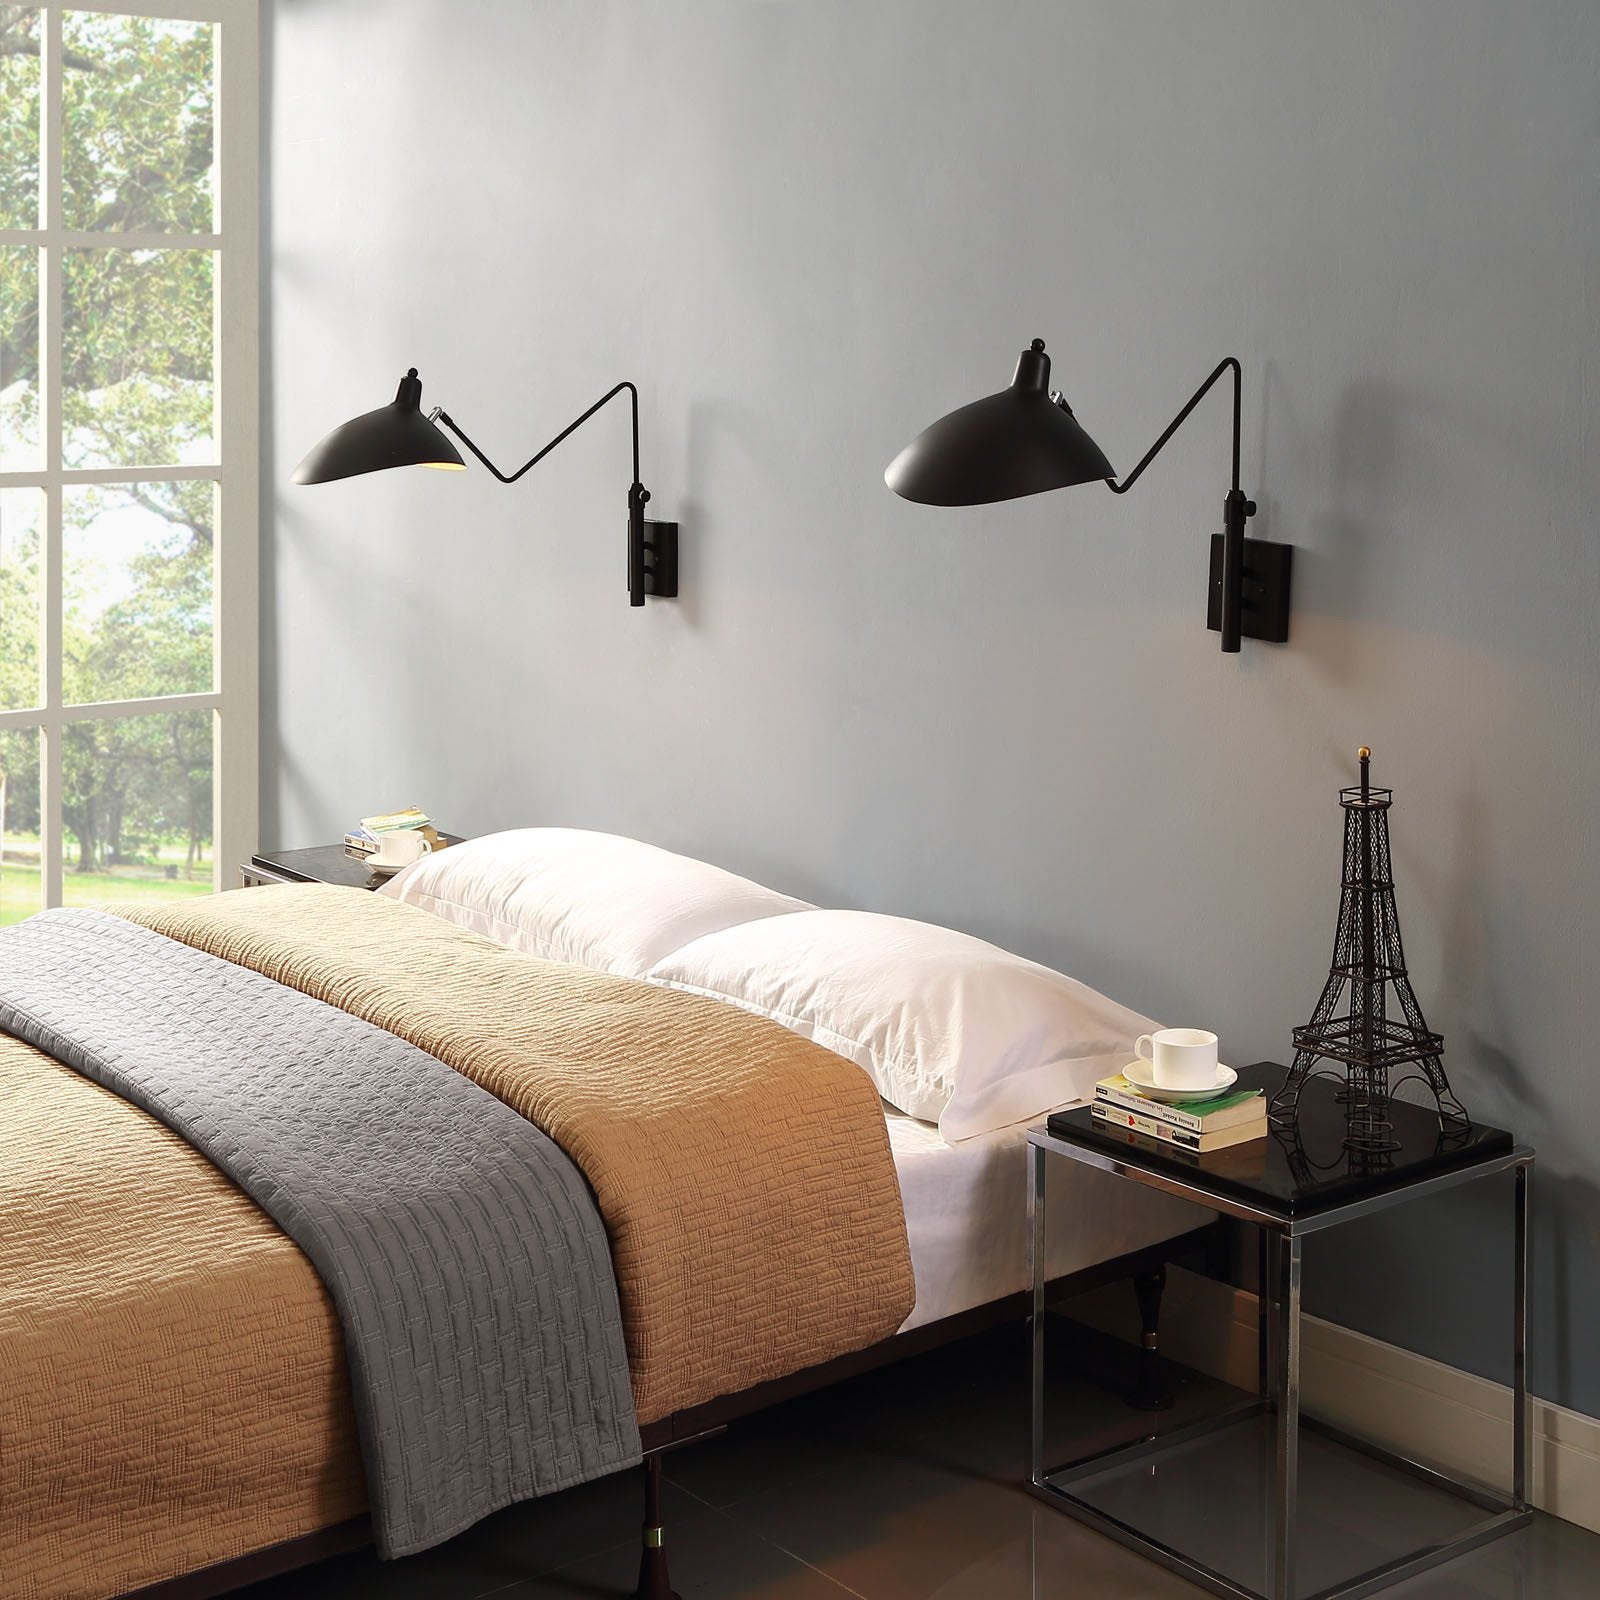 Serge mouille style wall lampsconce emfurn serge mouille style wall lampsconce emfurn 1 arubaitofo Images